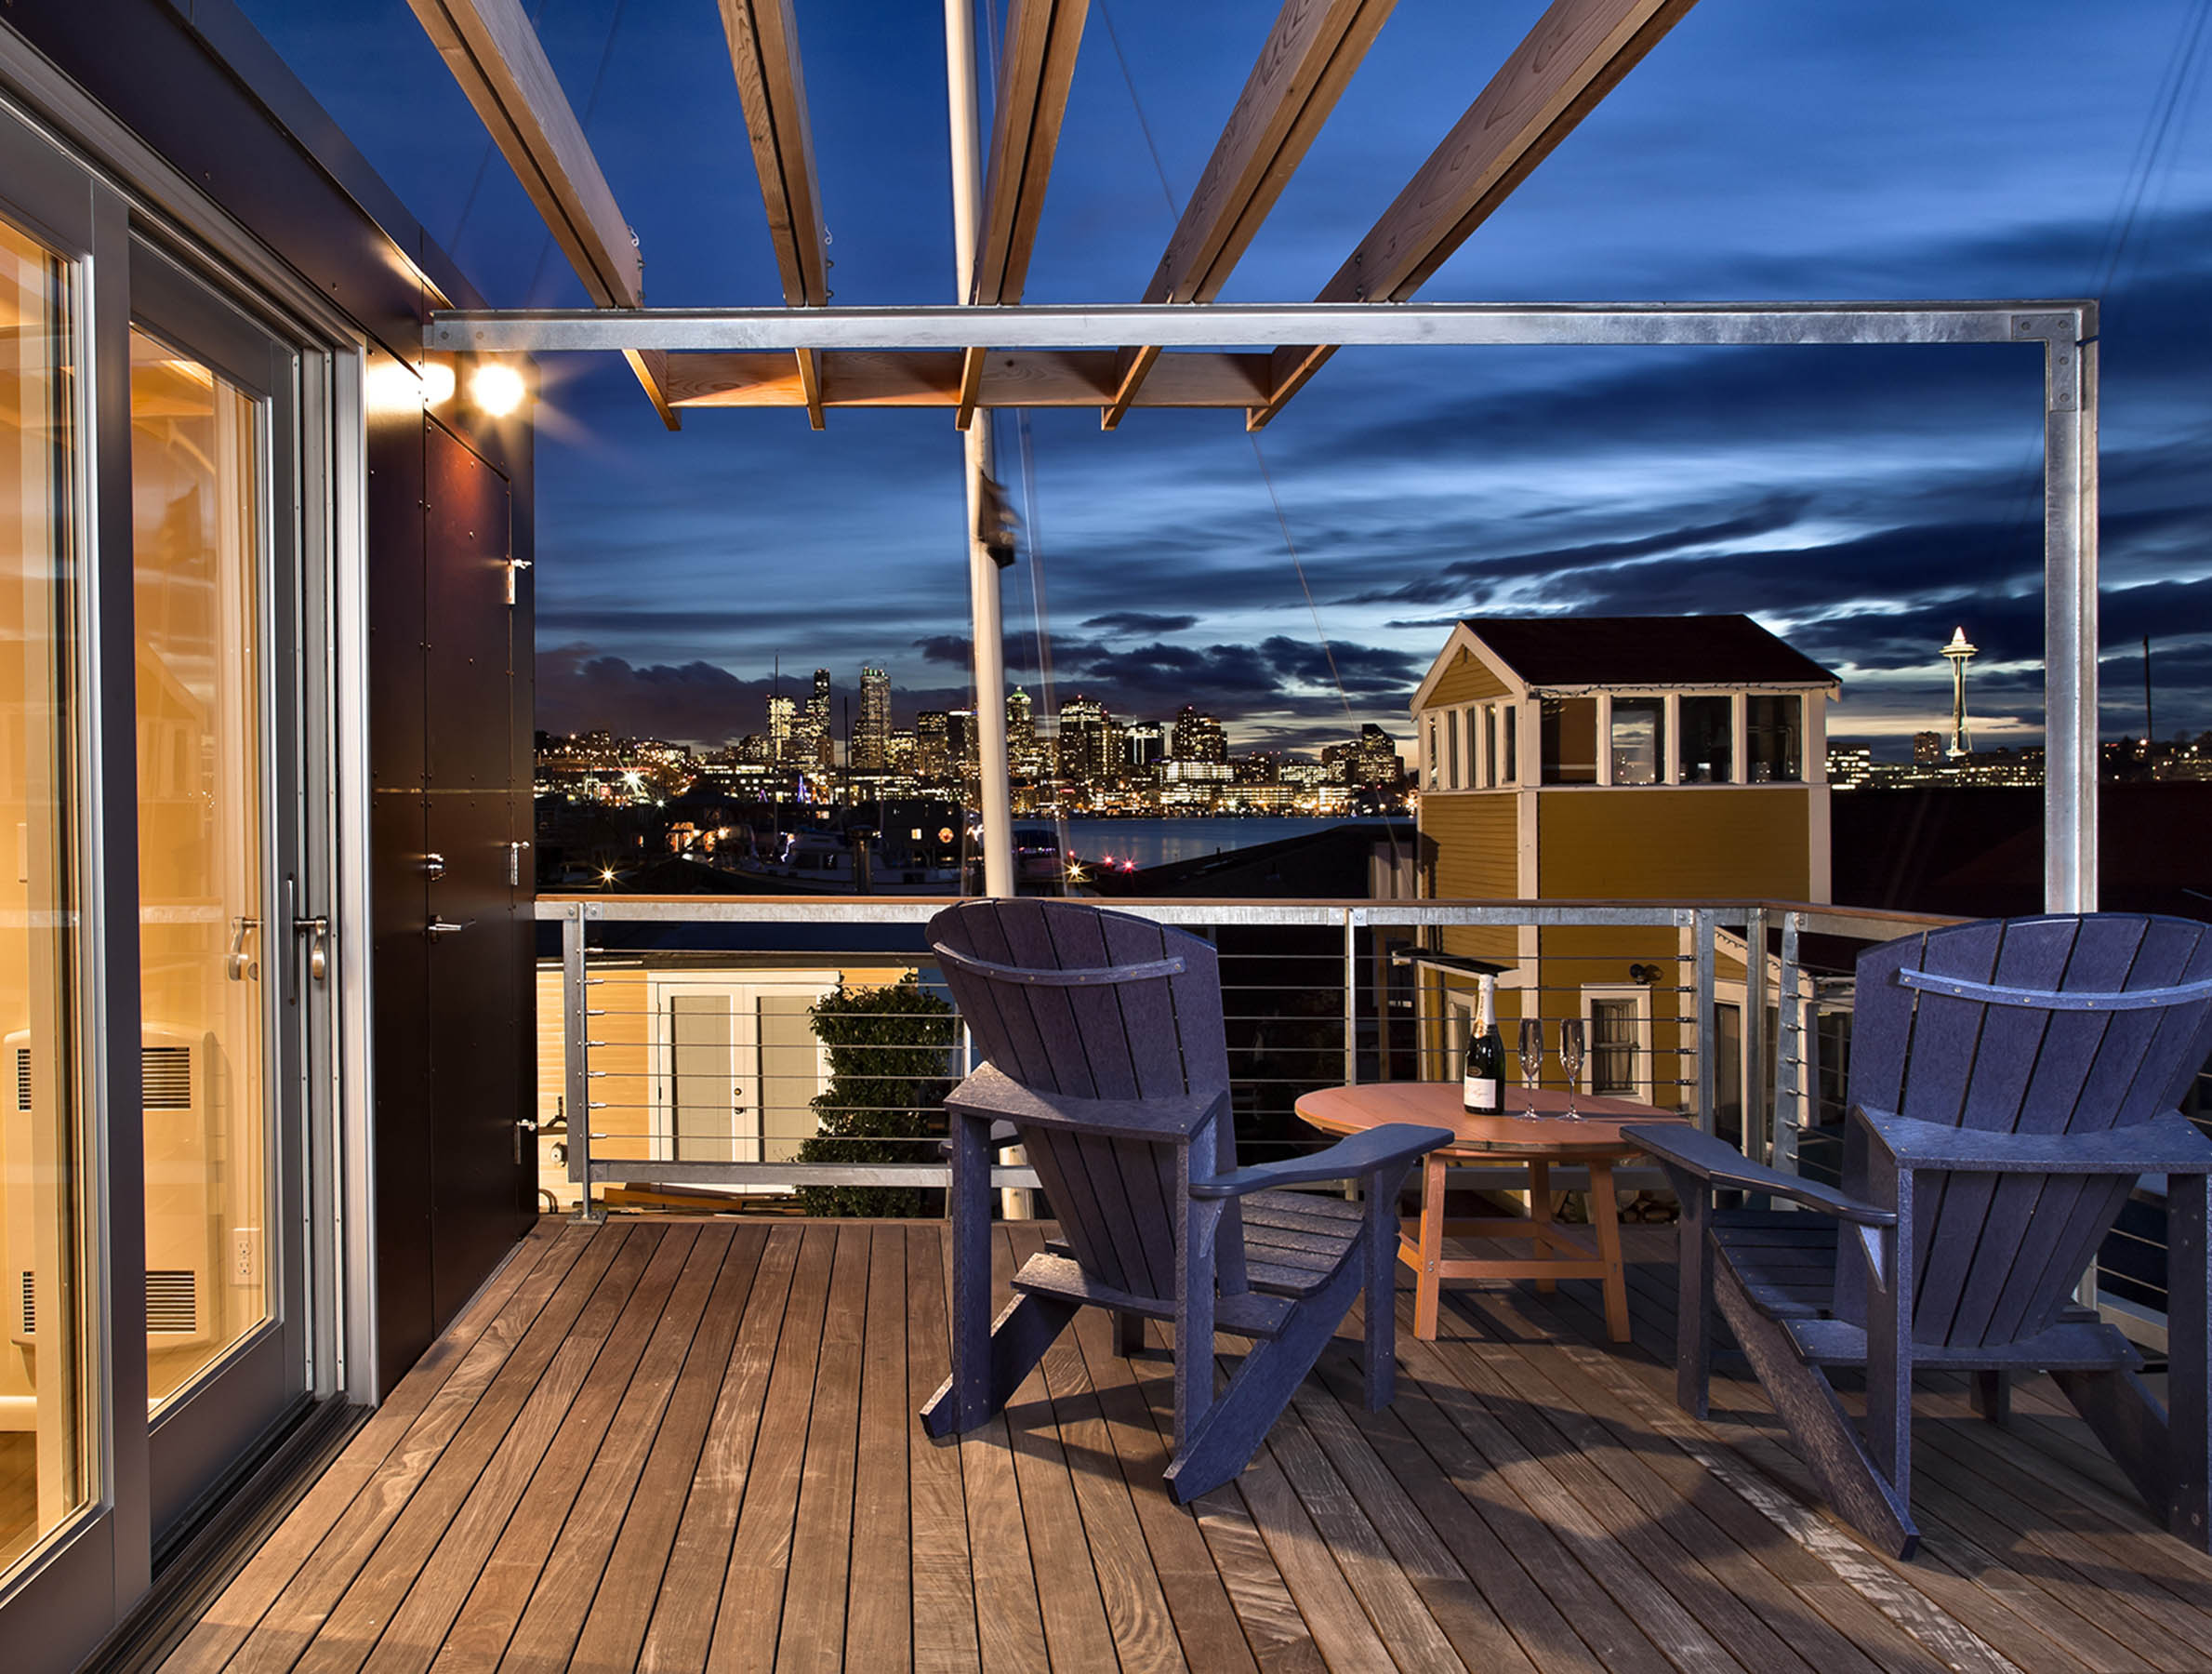 Image of newly designed second deck of floating home addition performed by Seattle Architect - Bruce Donnally at Donnally Architects